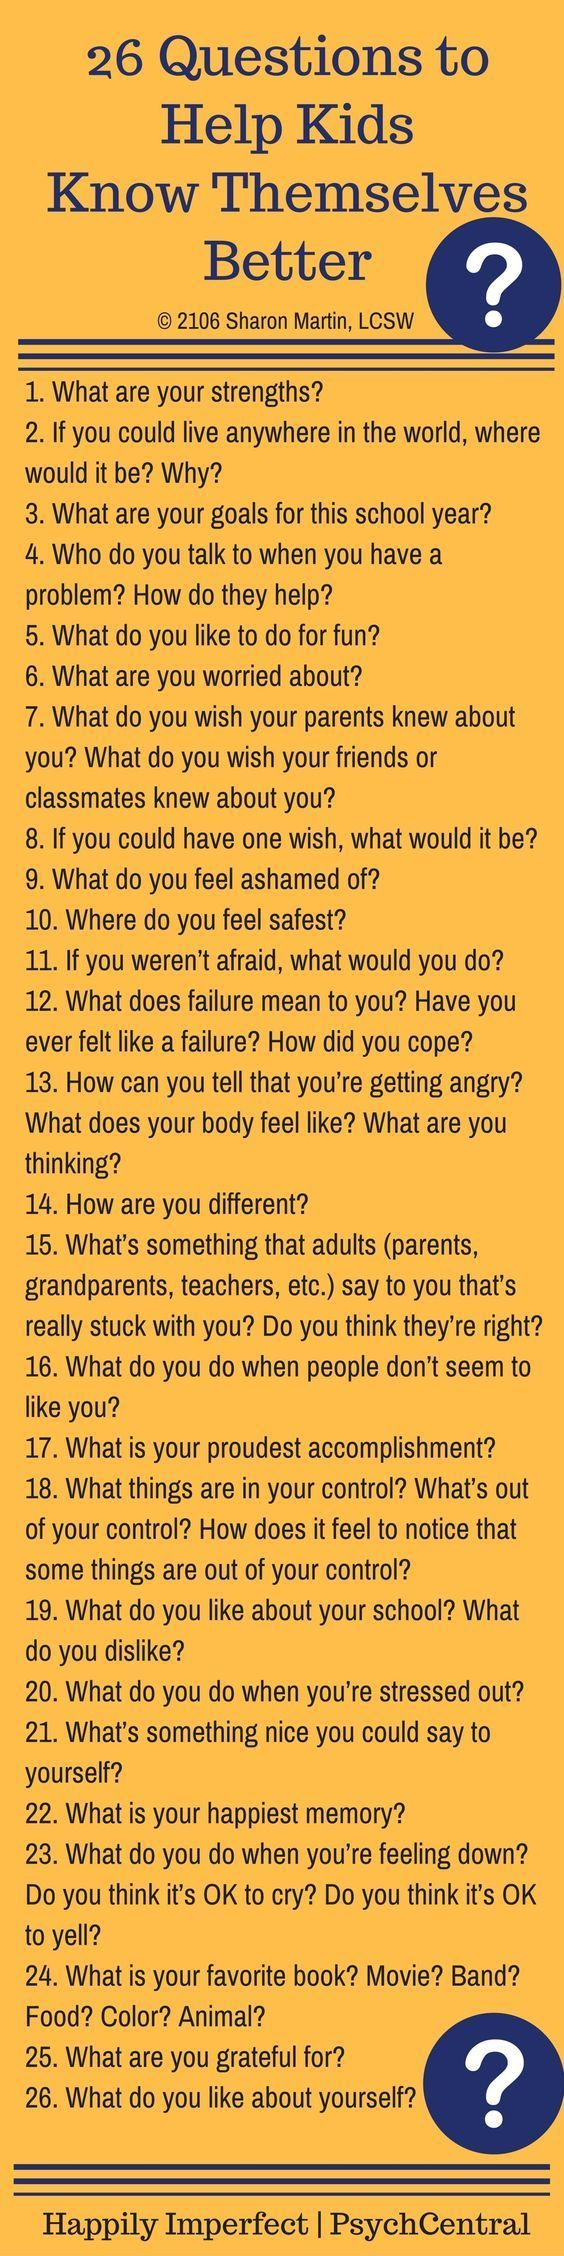 Photo of 26 Questions to Help Kids Know Themselves Better